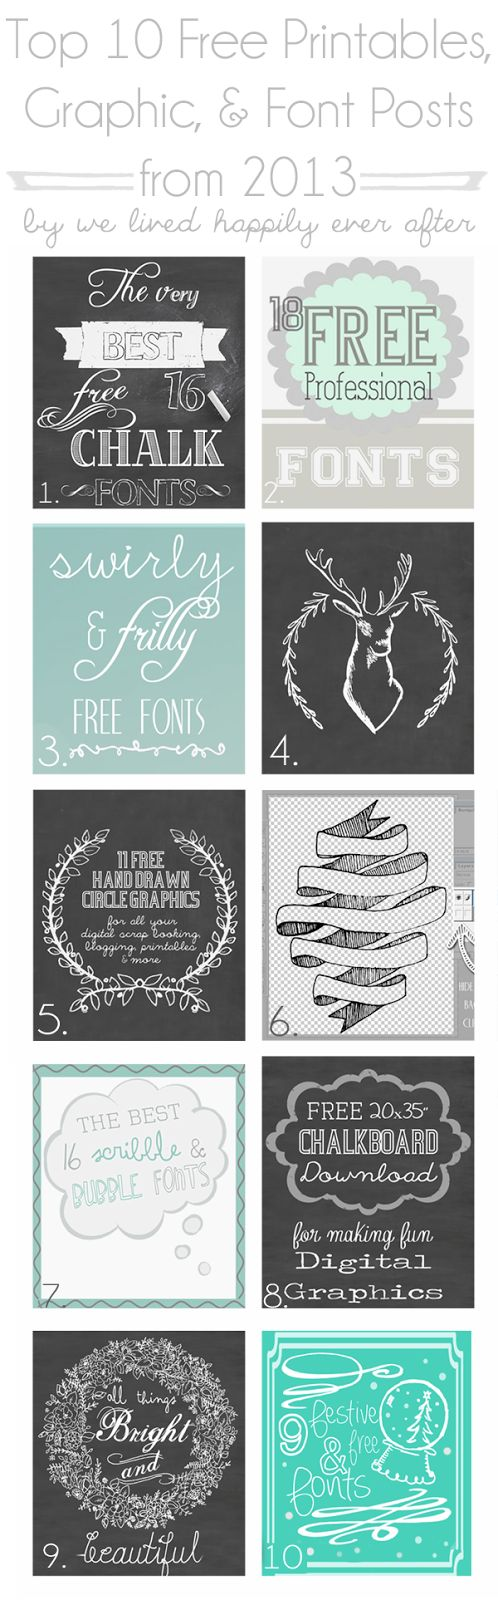 Top 10 Free Printables, Graphic, & Font Posts from 2013